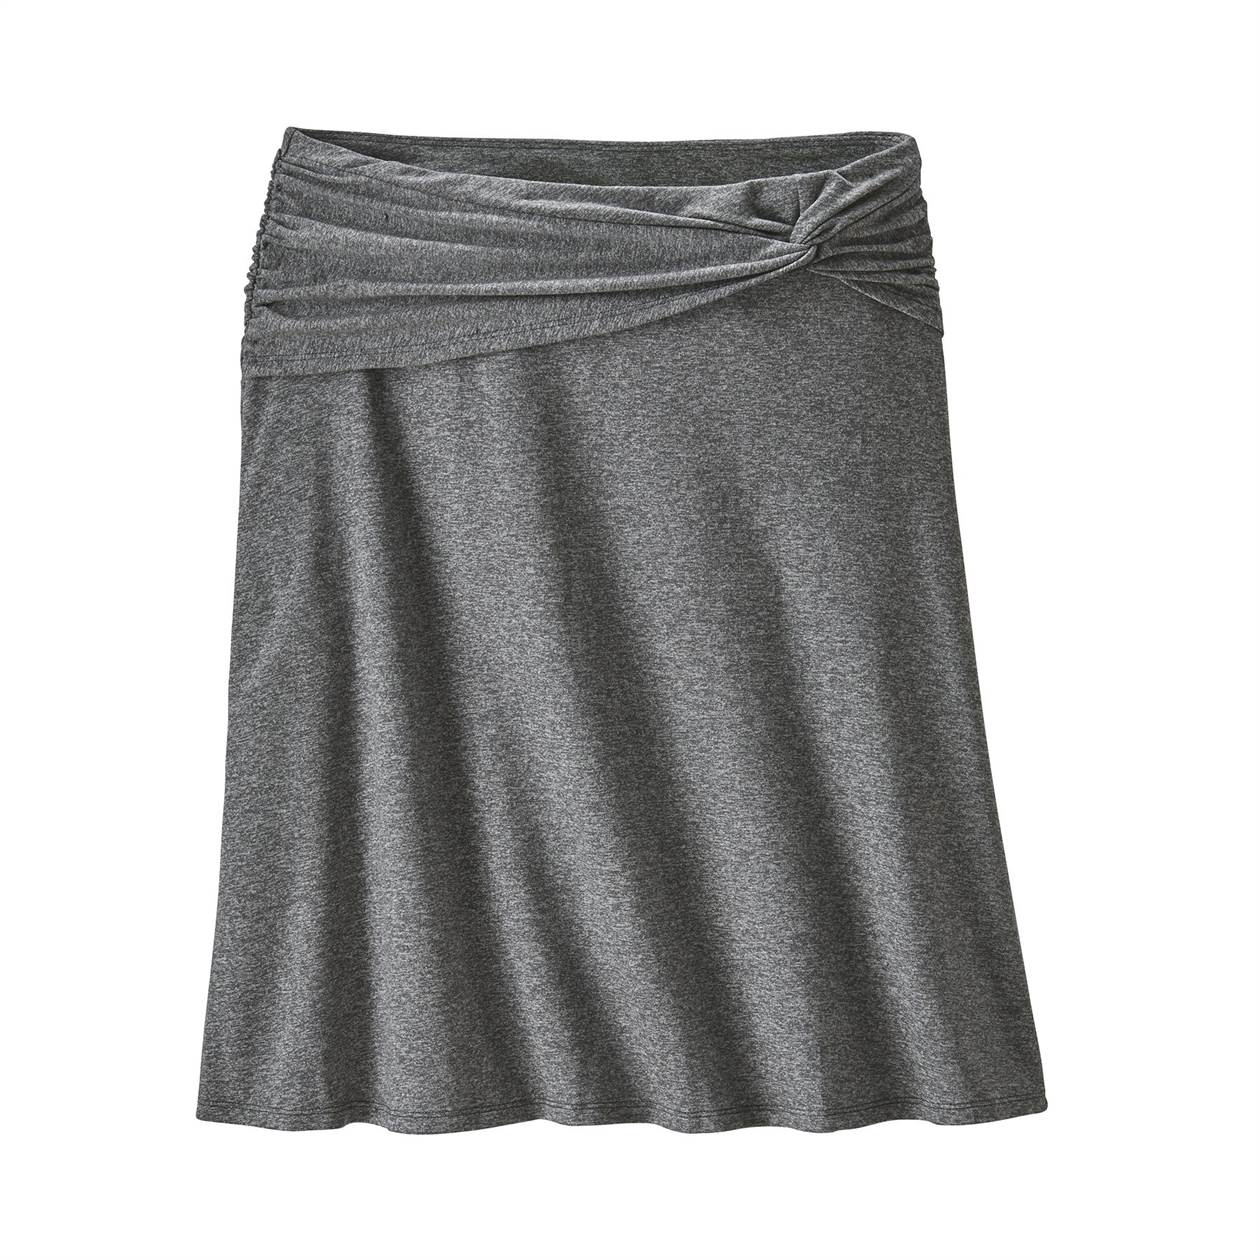 Seabrook Skirt - Women's